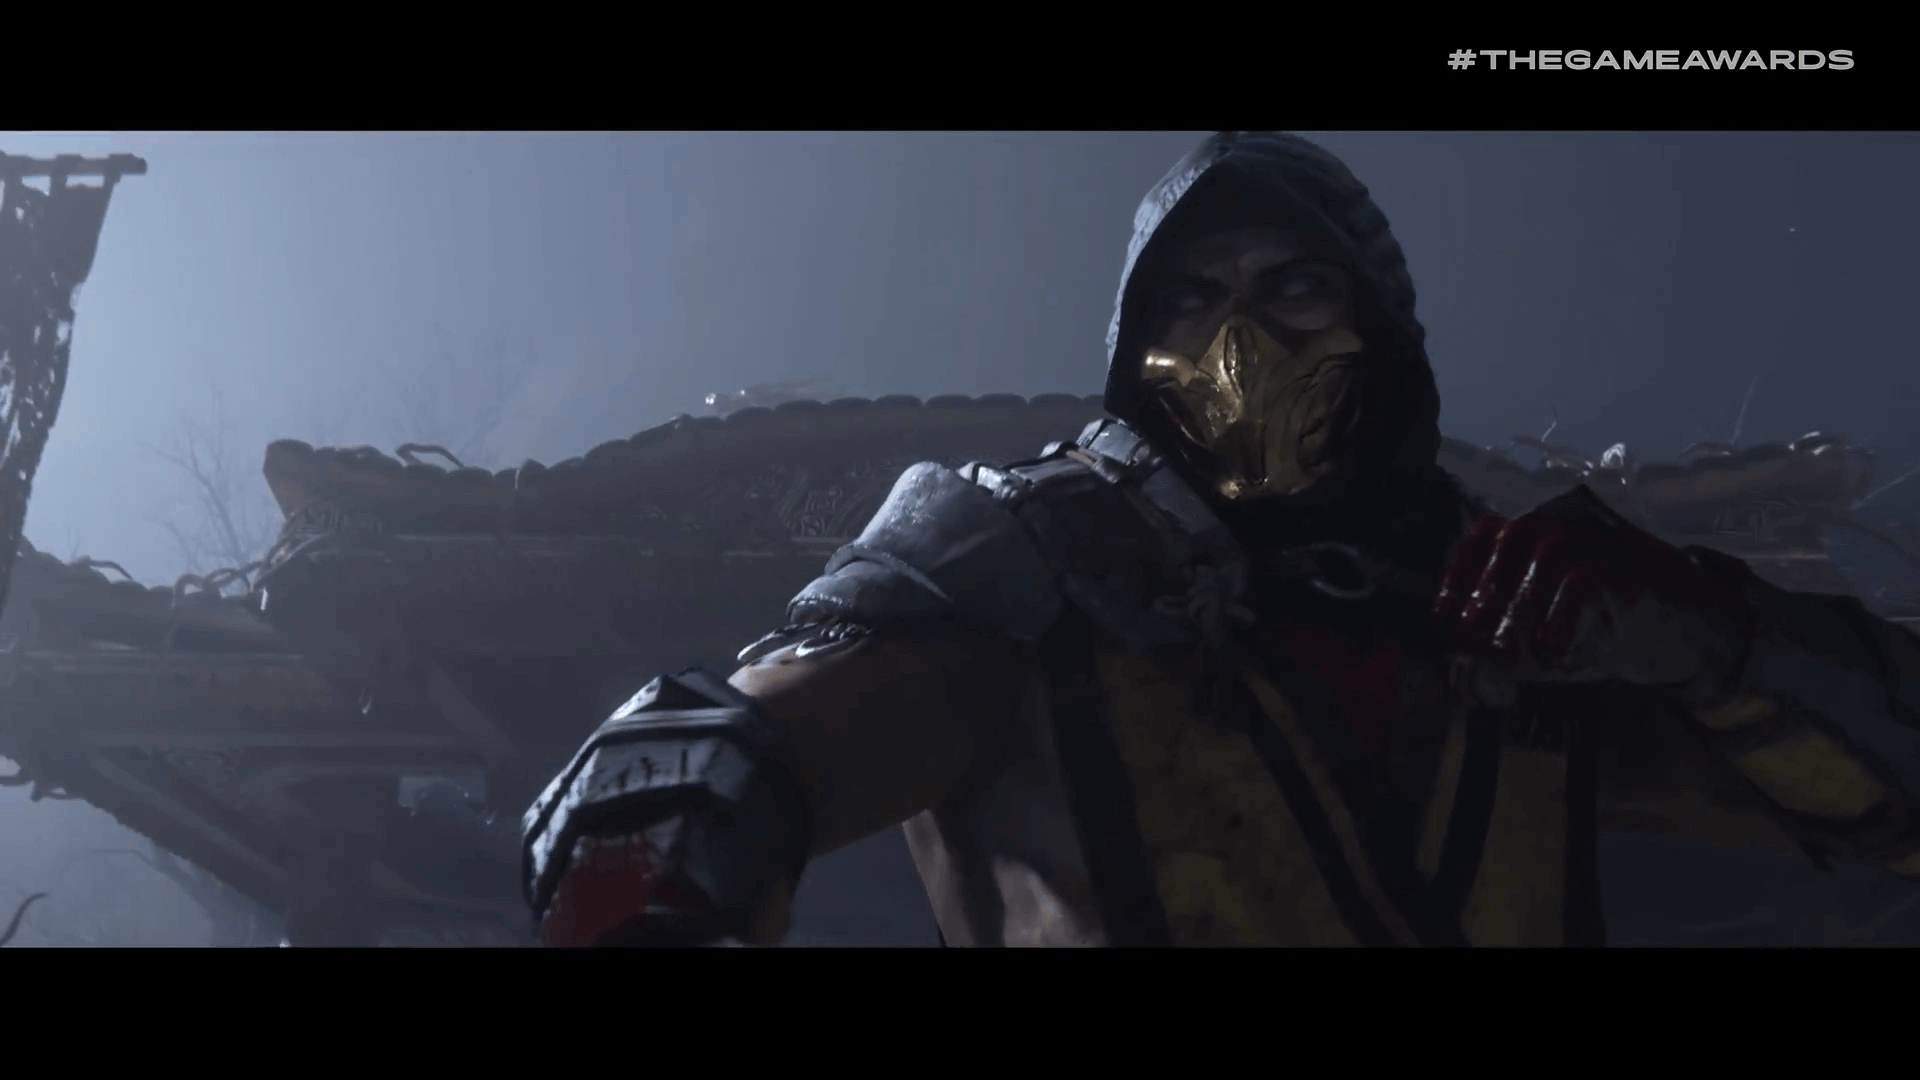 Mortal Kombat 11 Announced at The Game Awards